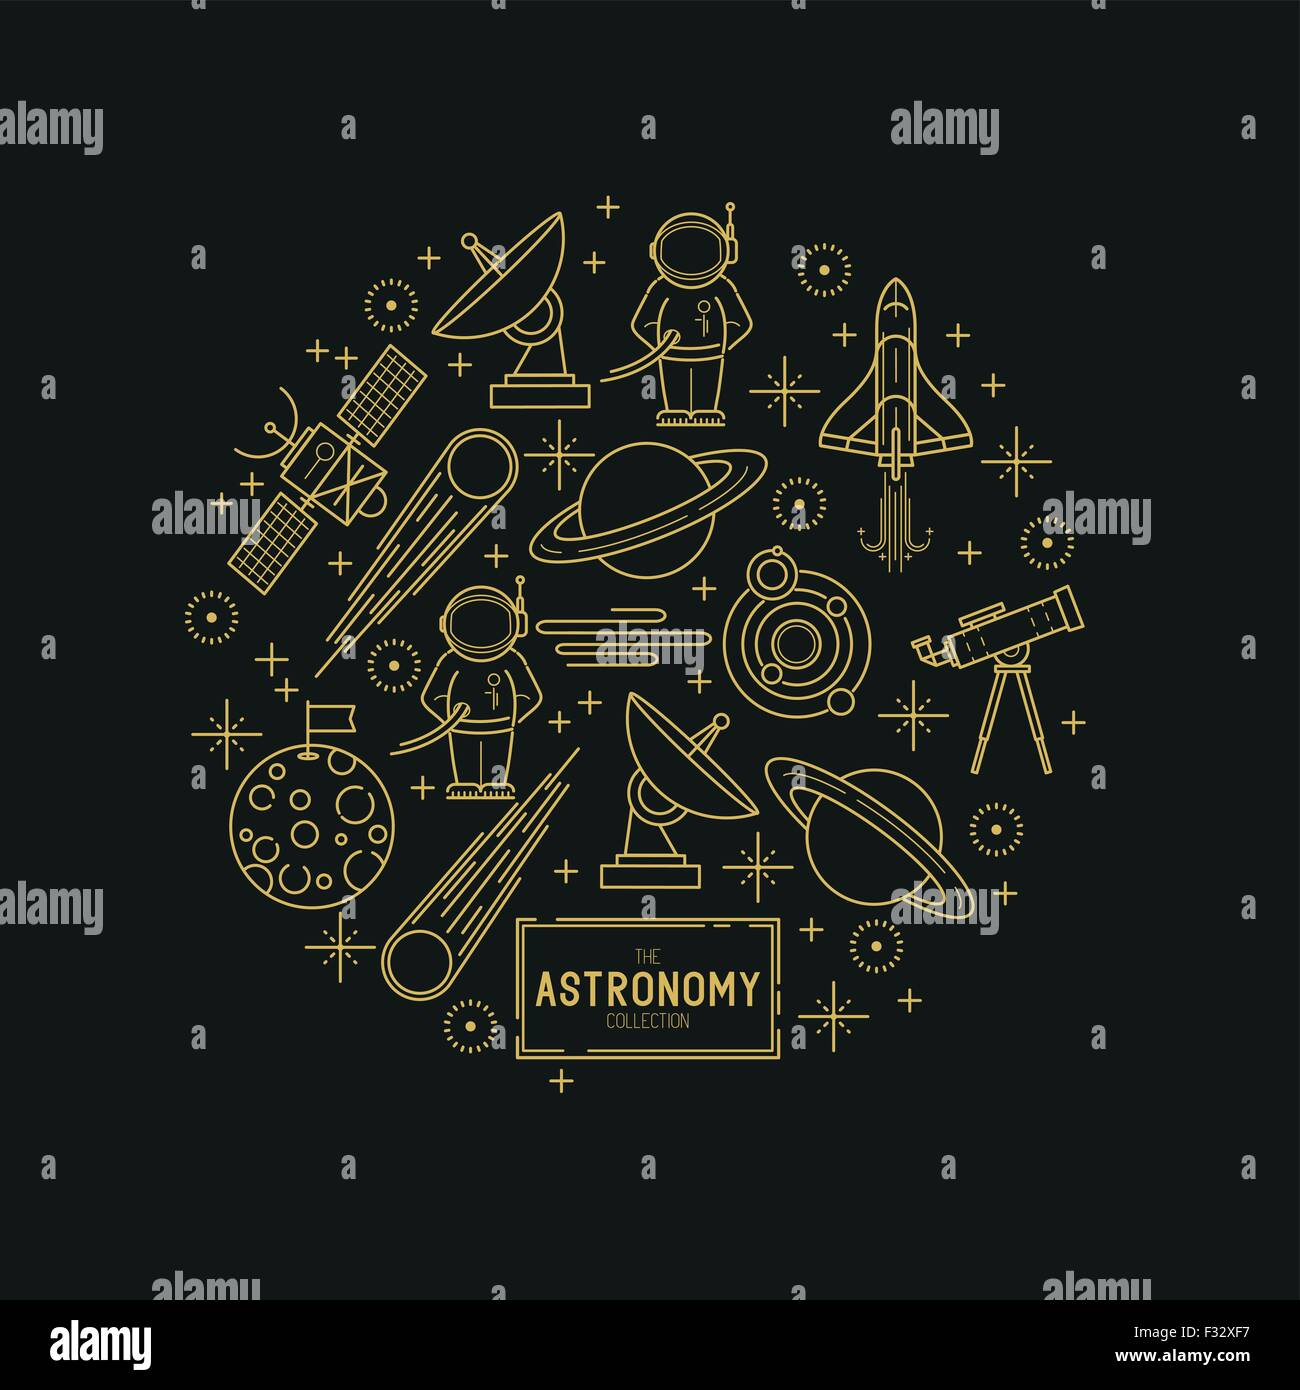 Astronomy Gold Vector Icon Set. A collection of space themed line icons including a planet, rocket, spaceman and - Stock Image